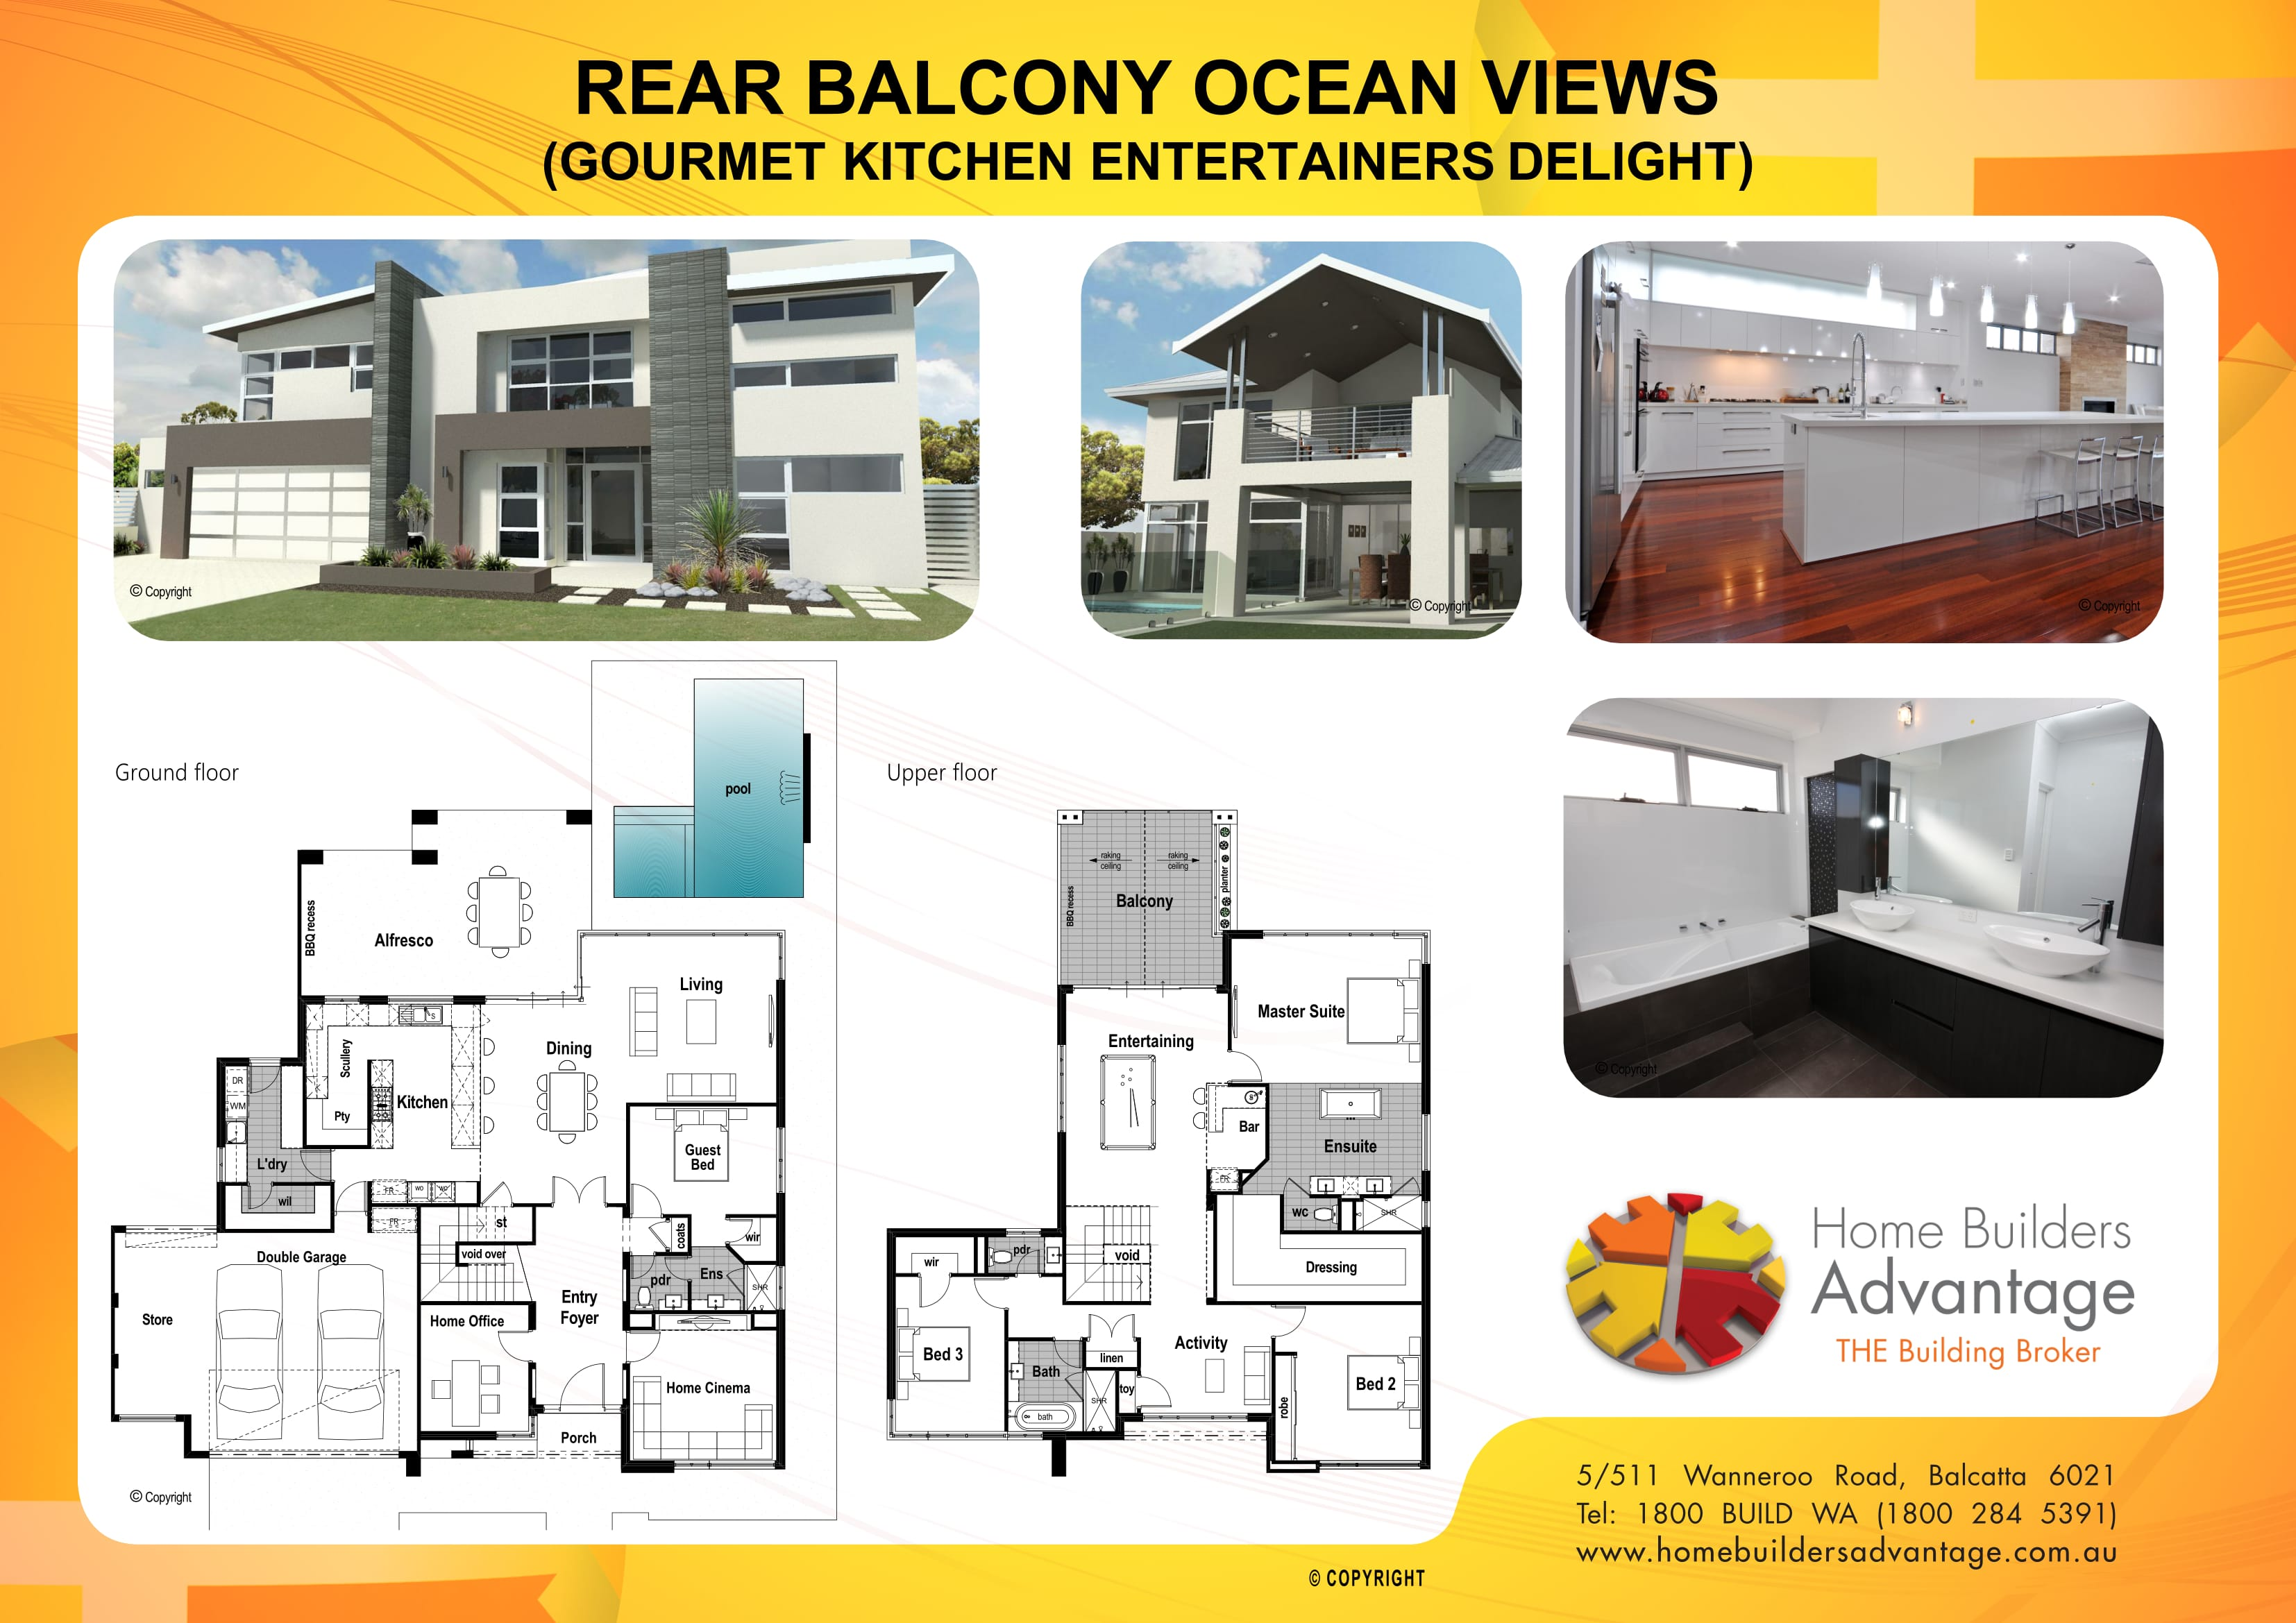 Rear Balcony Ocean Views (Gourmet Kitchen Entertainers Delight) Floor Plan Home Builders Advantage Perth The Building Broker